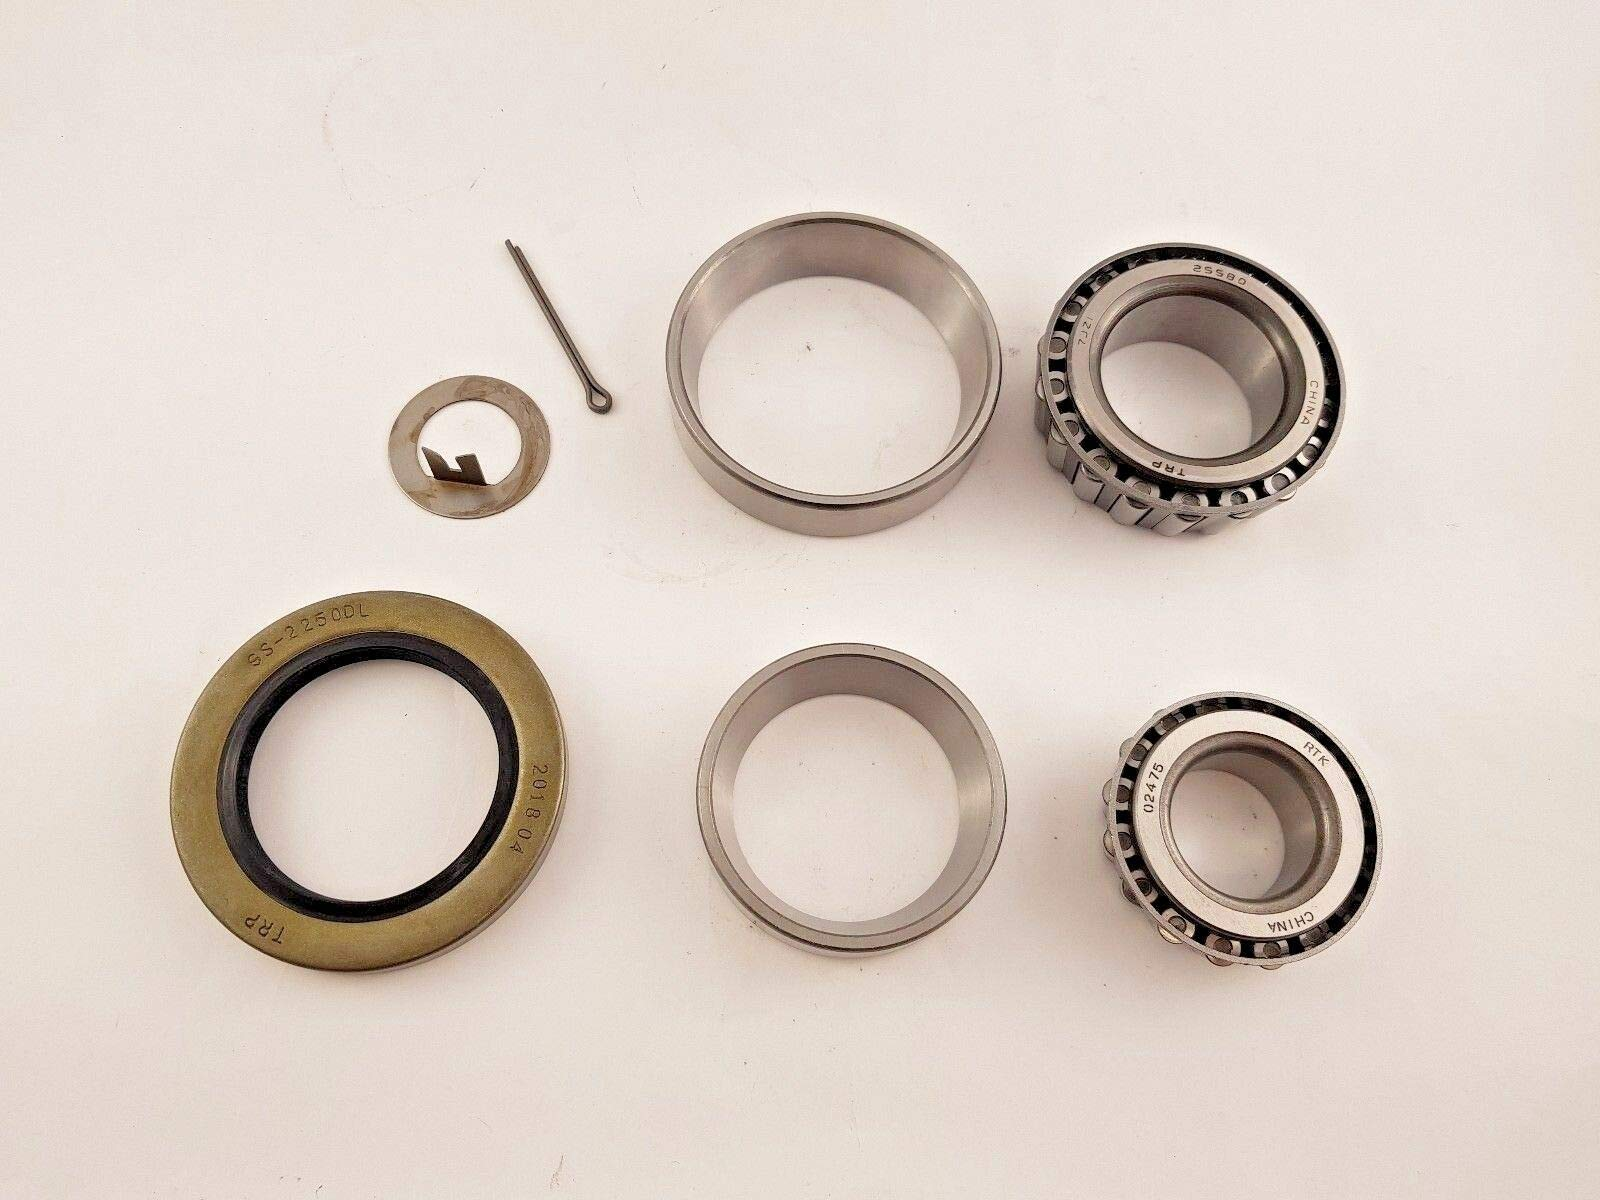 Grease Bearing Kit 8000# Axle #42 Spindle 02475 22580 8K Dexter Lippert Trailer by unbrand